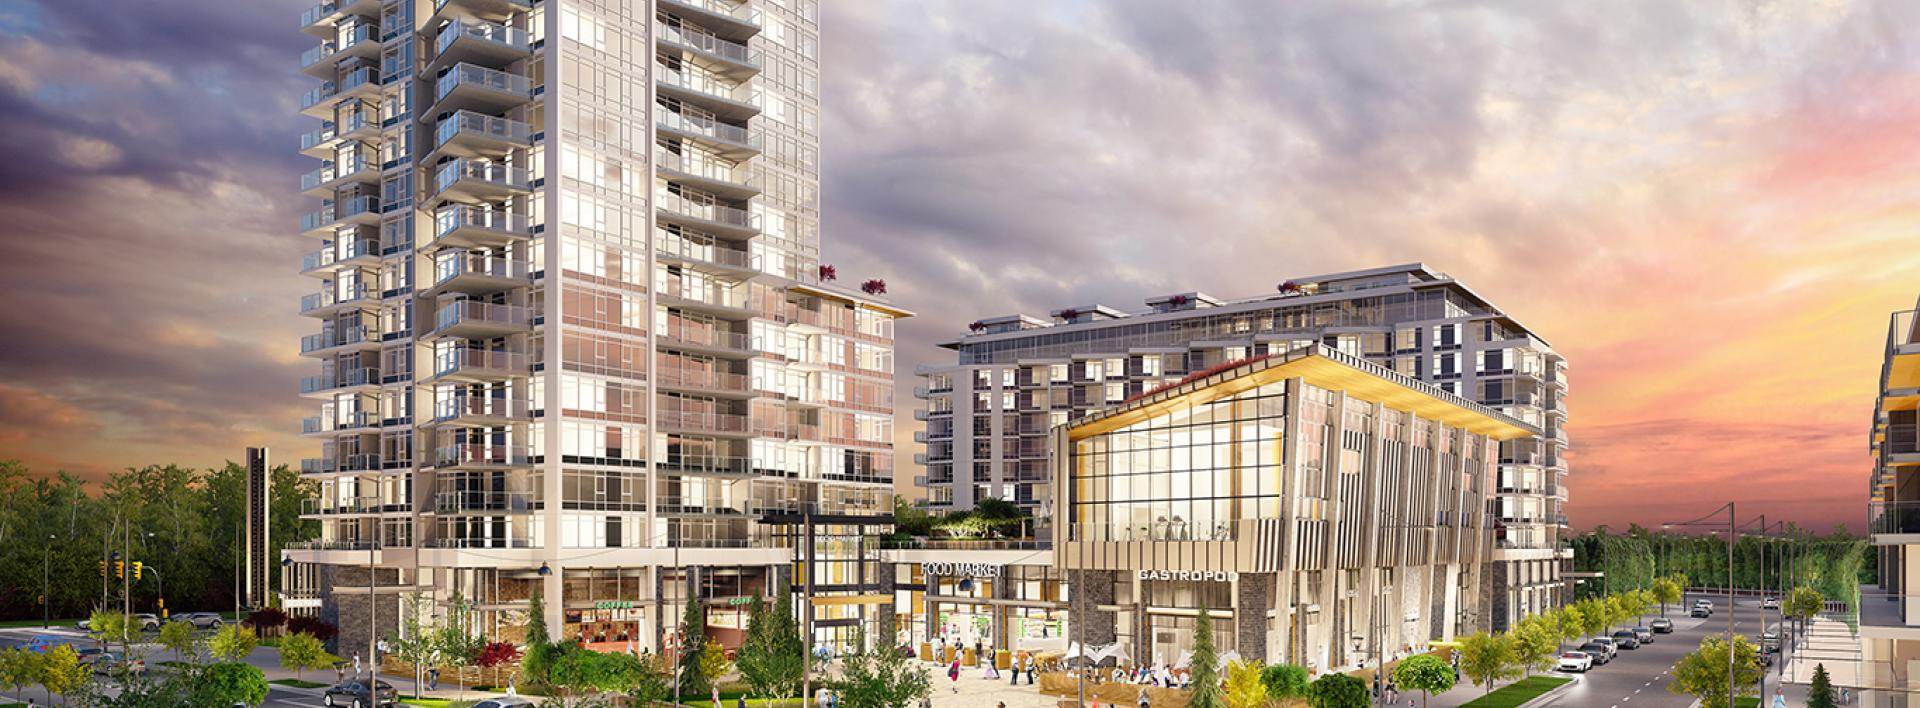 CG Render River District Vancouver BC